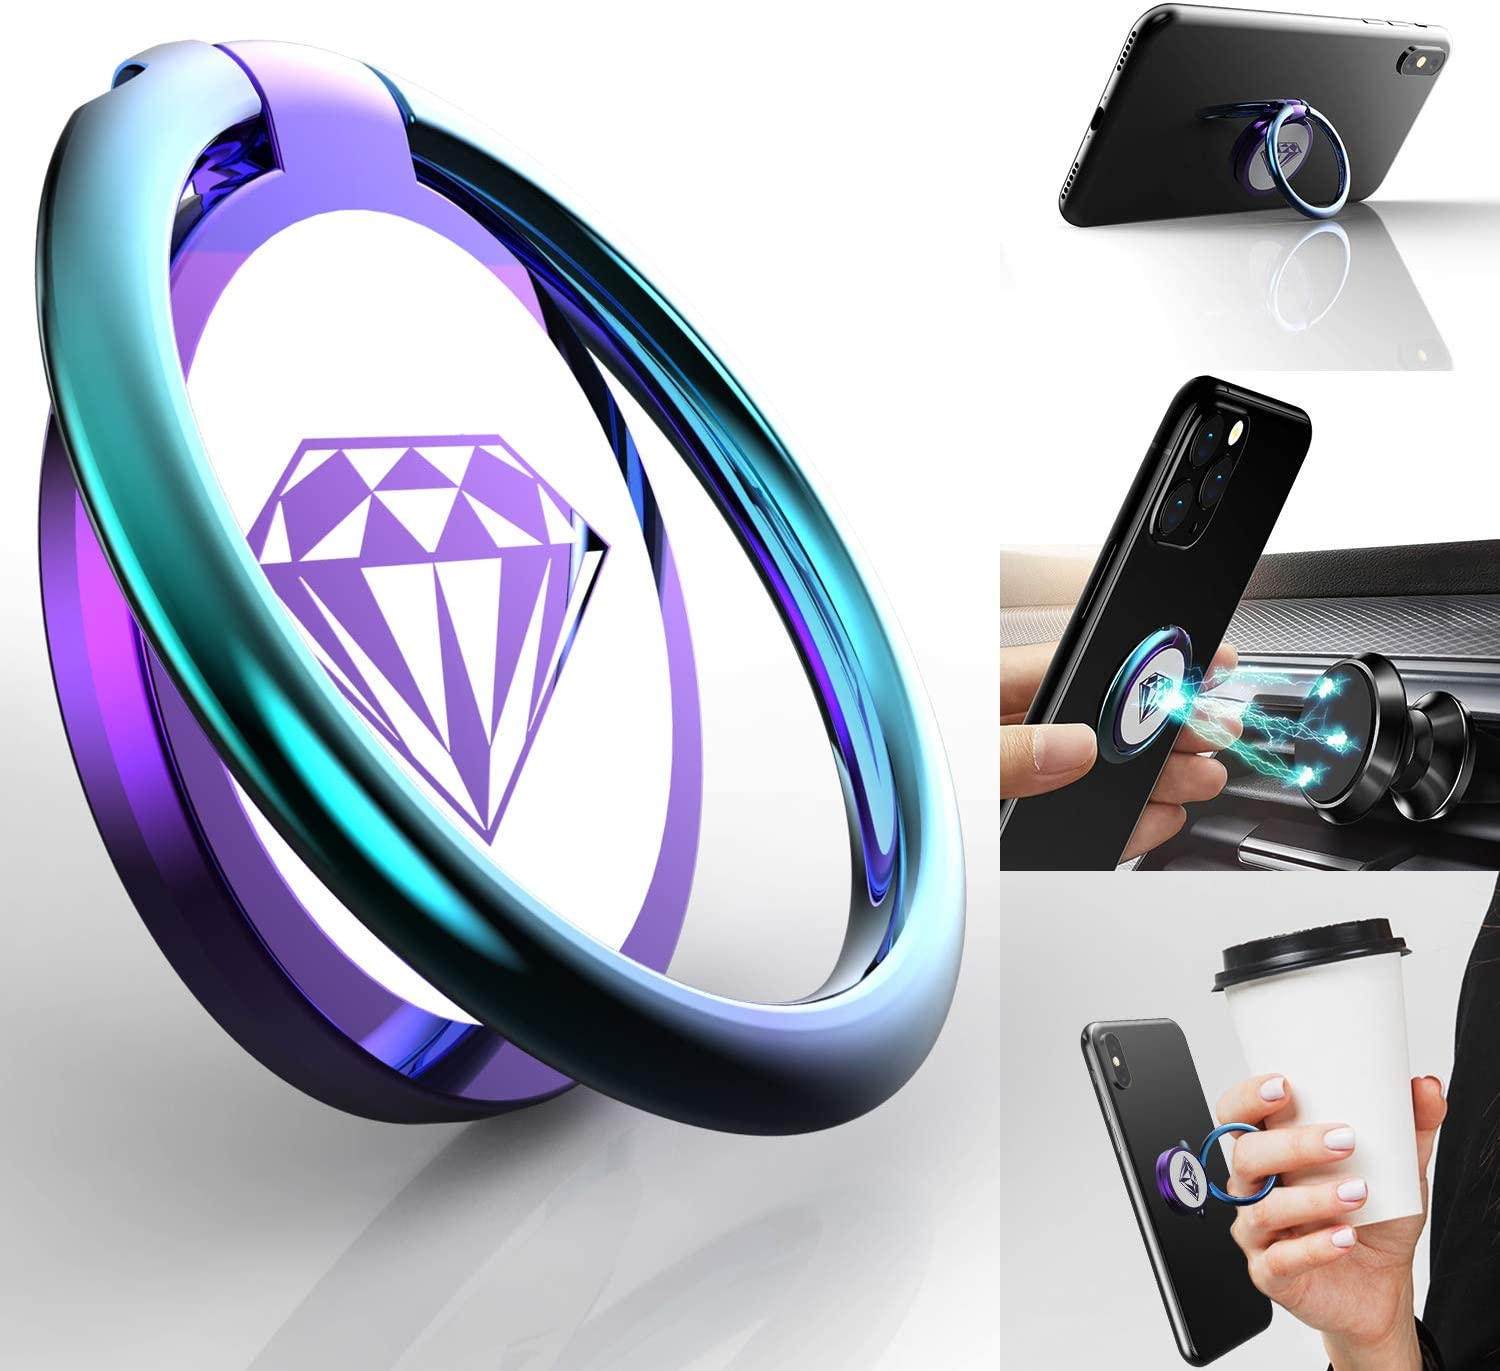 Phone Ring Holder Finger Kickstand, A-Maker 360° Rotation Metal Phone Ring Stand,Phone Ring Grip for Magnetic Car Mount Compatible with iPhone, Samsung Galaxy All Smartphone (Colorful)